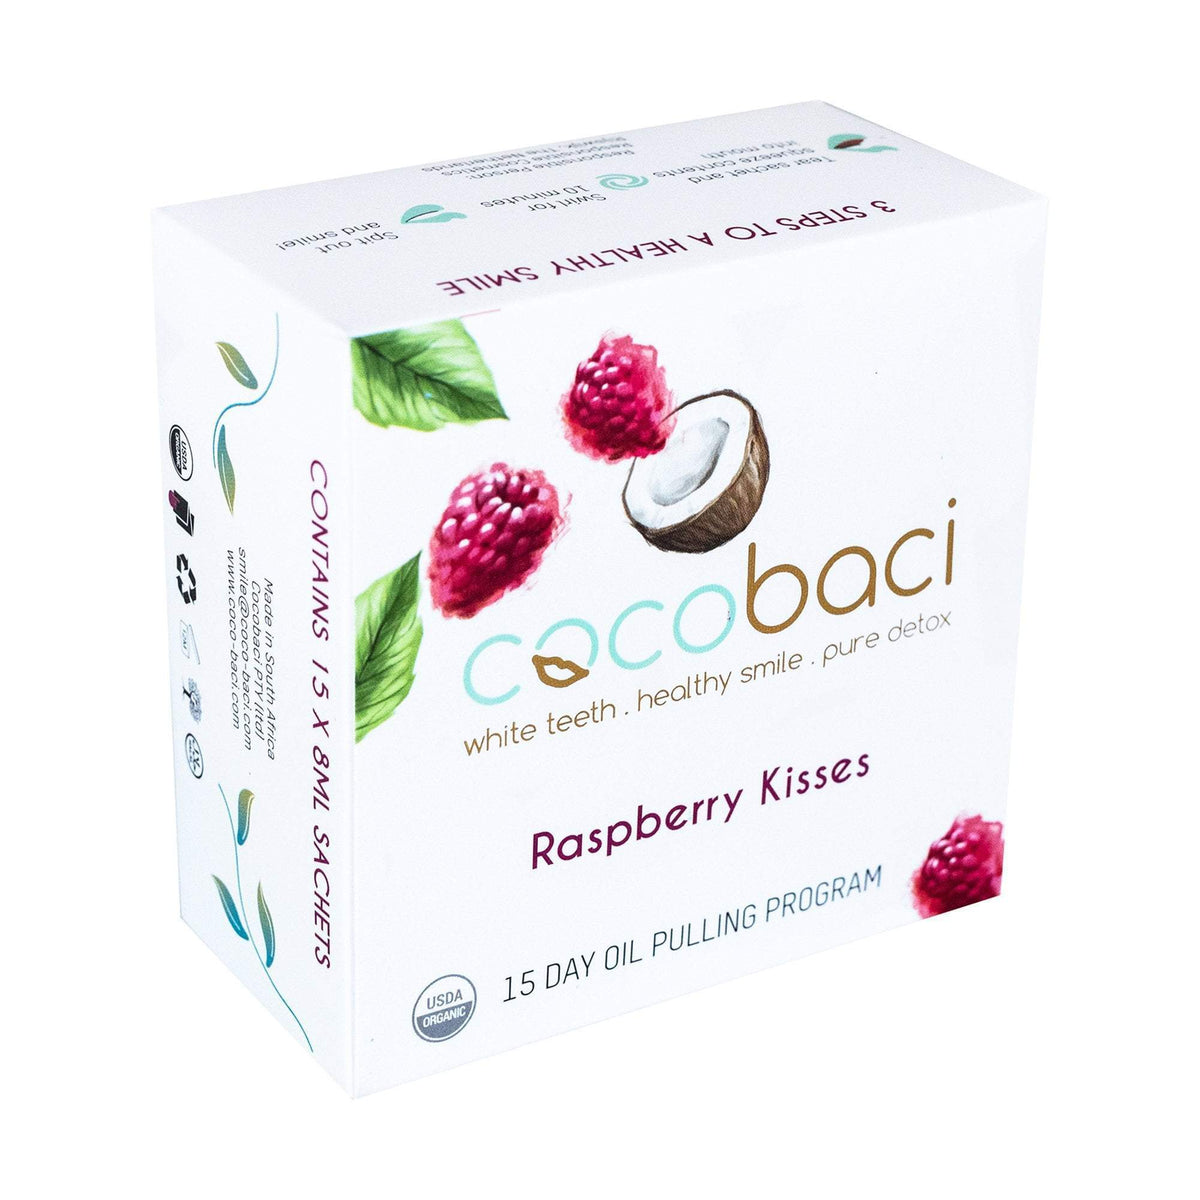 Cocobaci Raspberry 15 Day Oil Pulling Program